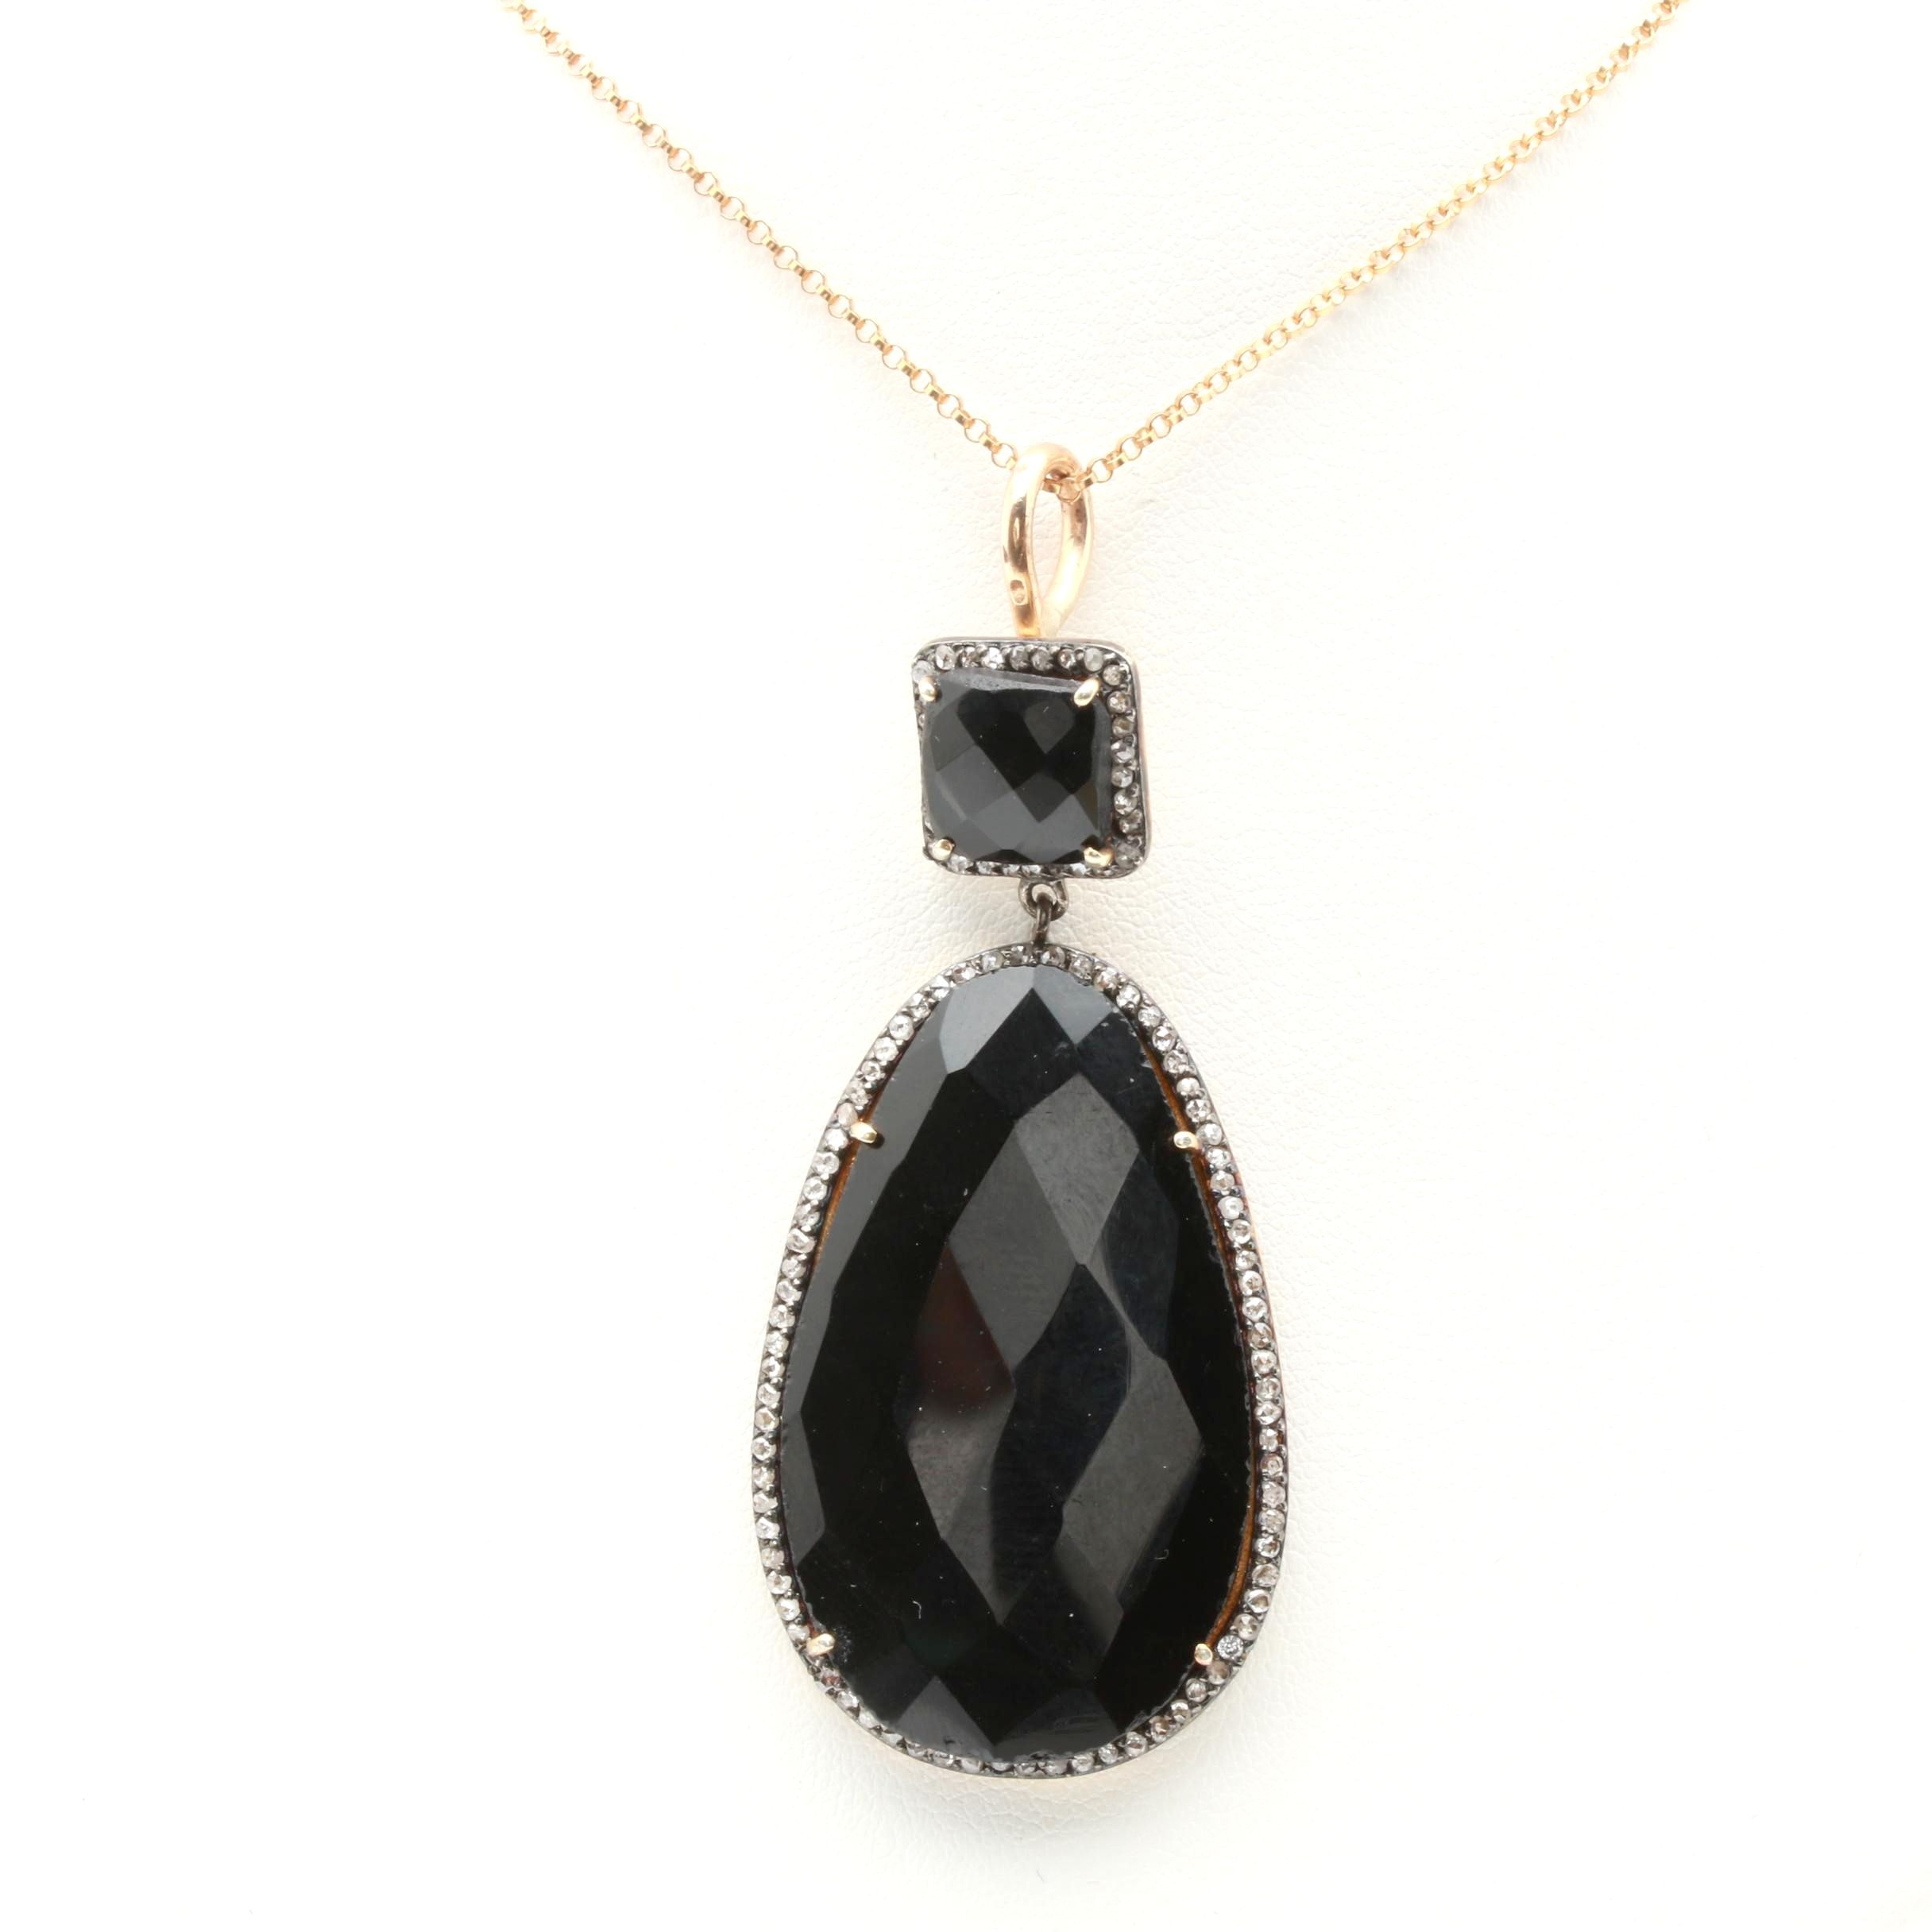 Gold Filled Black Onyx and Diamond Pendant Necklace